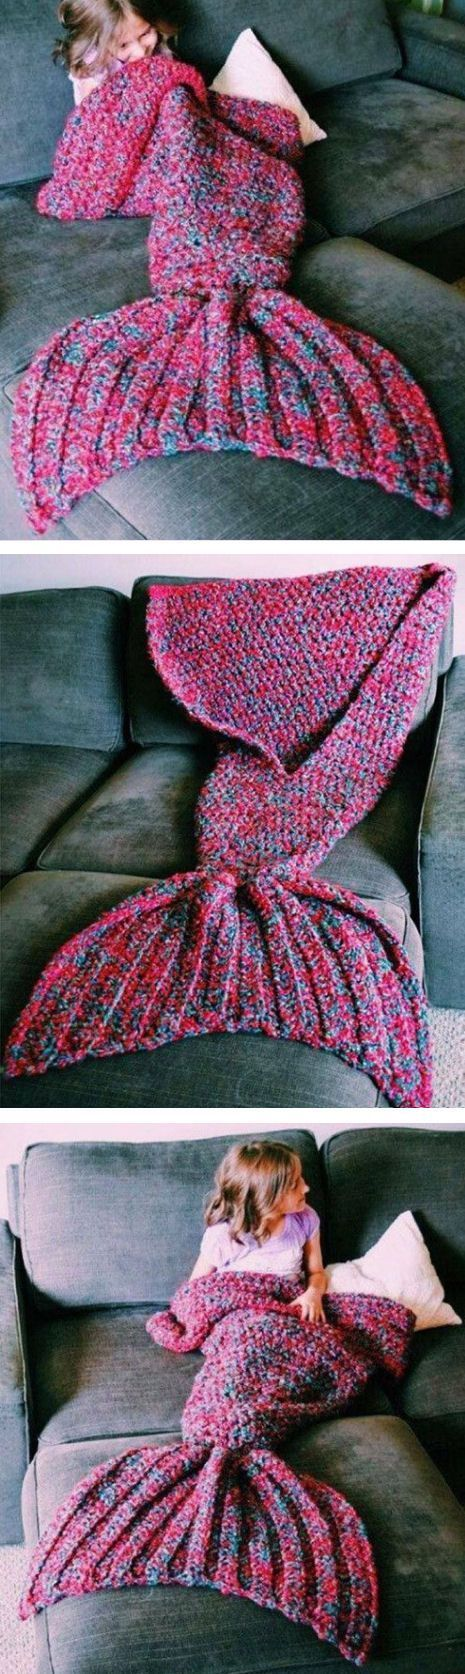 OMG .. Comfy & cUte! Mermaid Tail Blanket ❤︎ #want